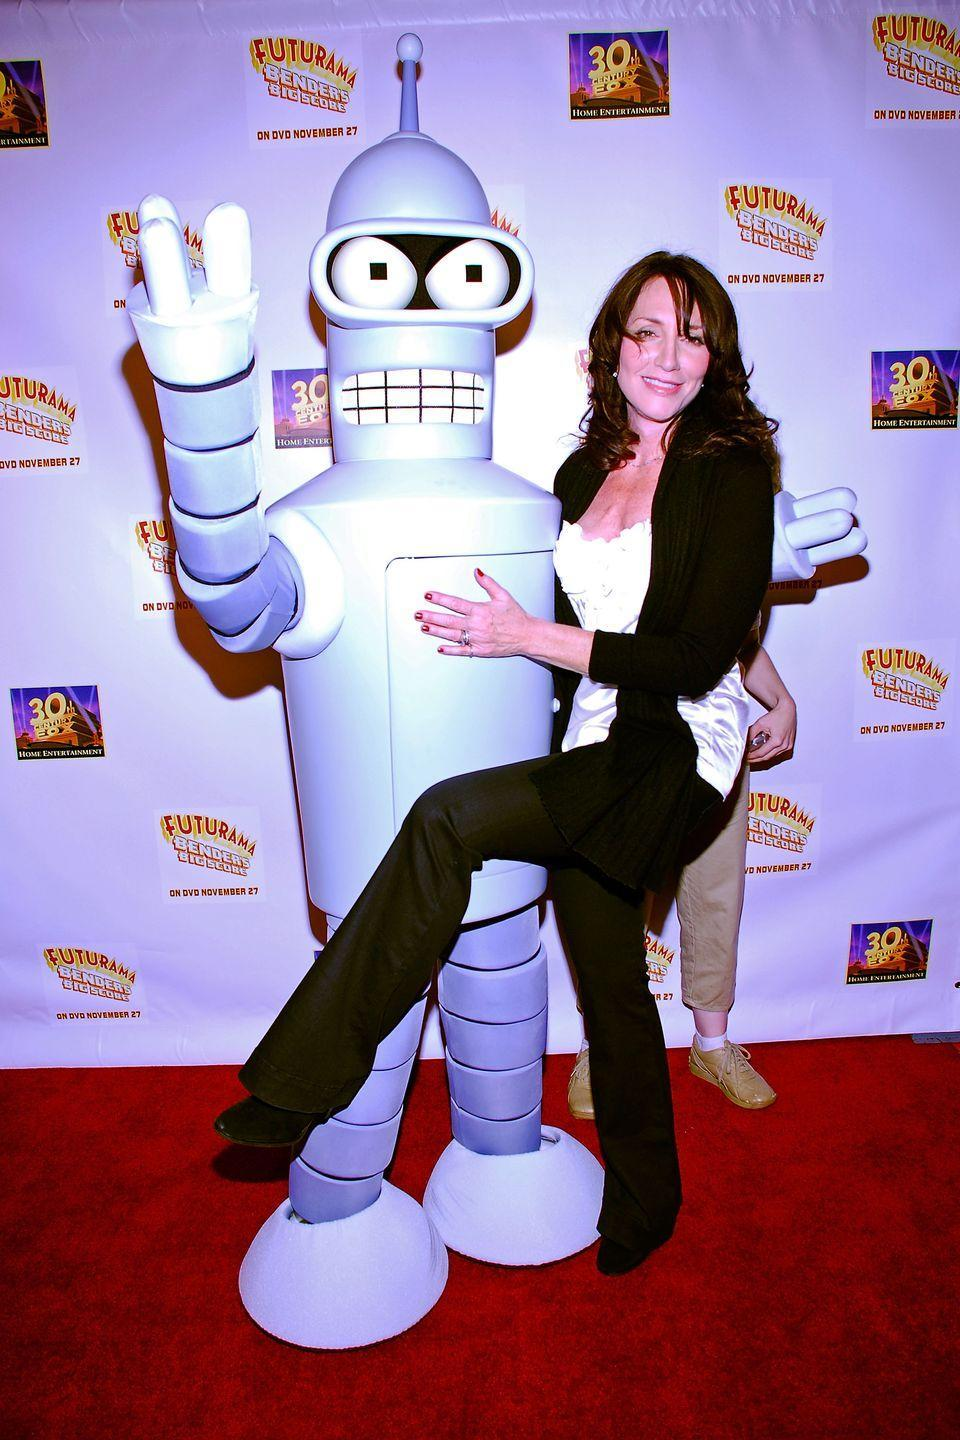 <p>If Katey Sagal looks familiar, that's because she was Peg Bundy on the long-running sitcom <em>Married... with Children</em> and also the badass Gemma Teller Morrow on <em>Sons of Anarchy.</em> She's also the voice of Leela, the stunning one-eyed alien on <em>Futurama</em>. </p>